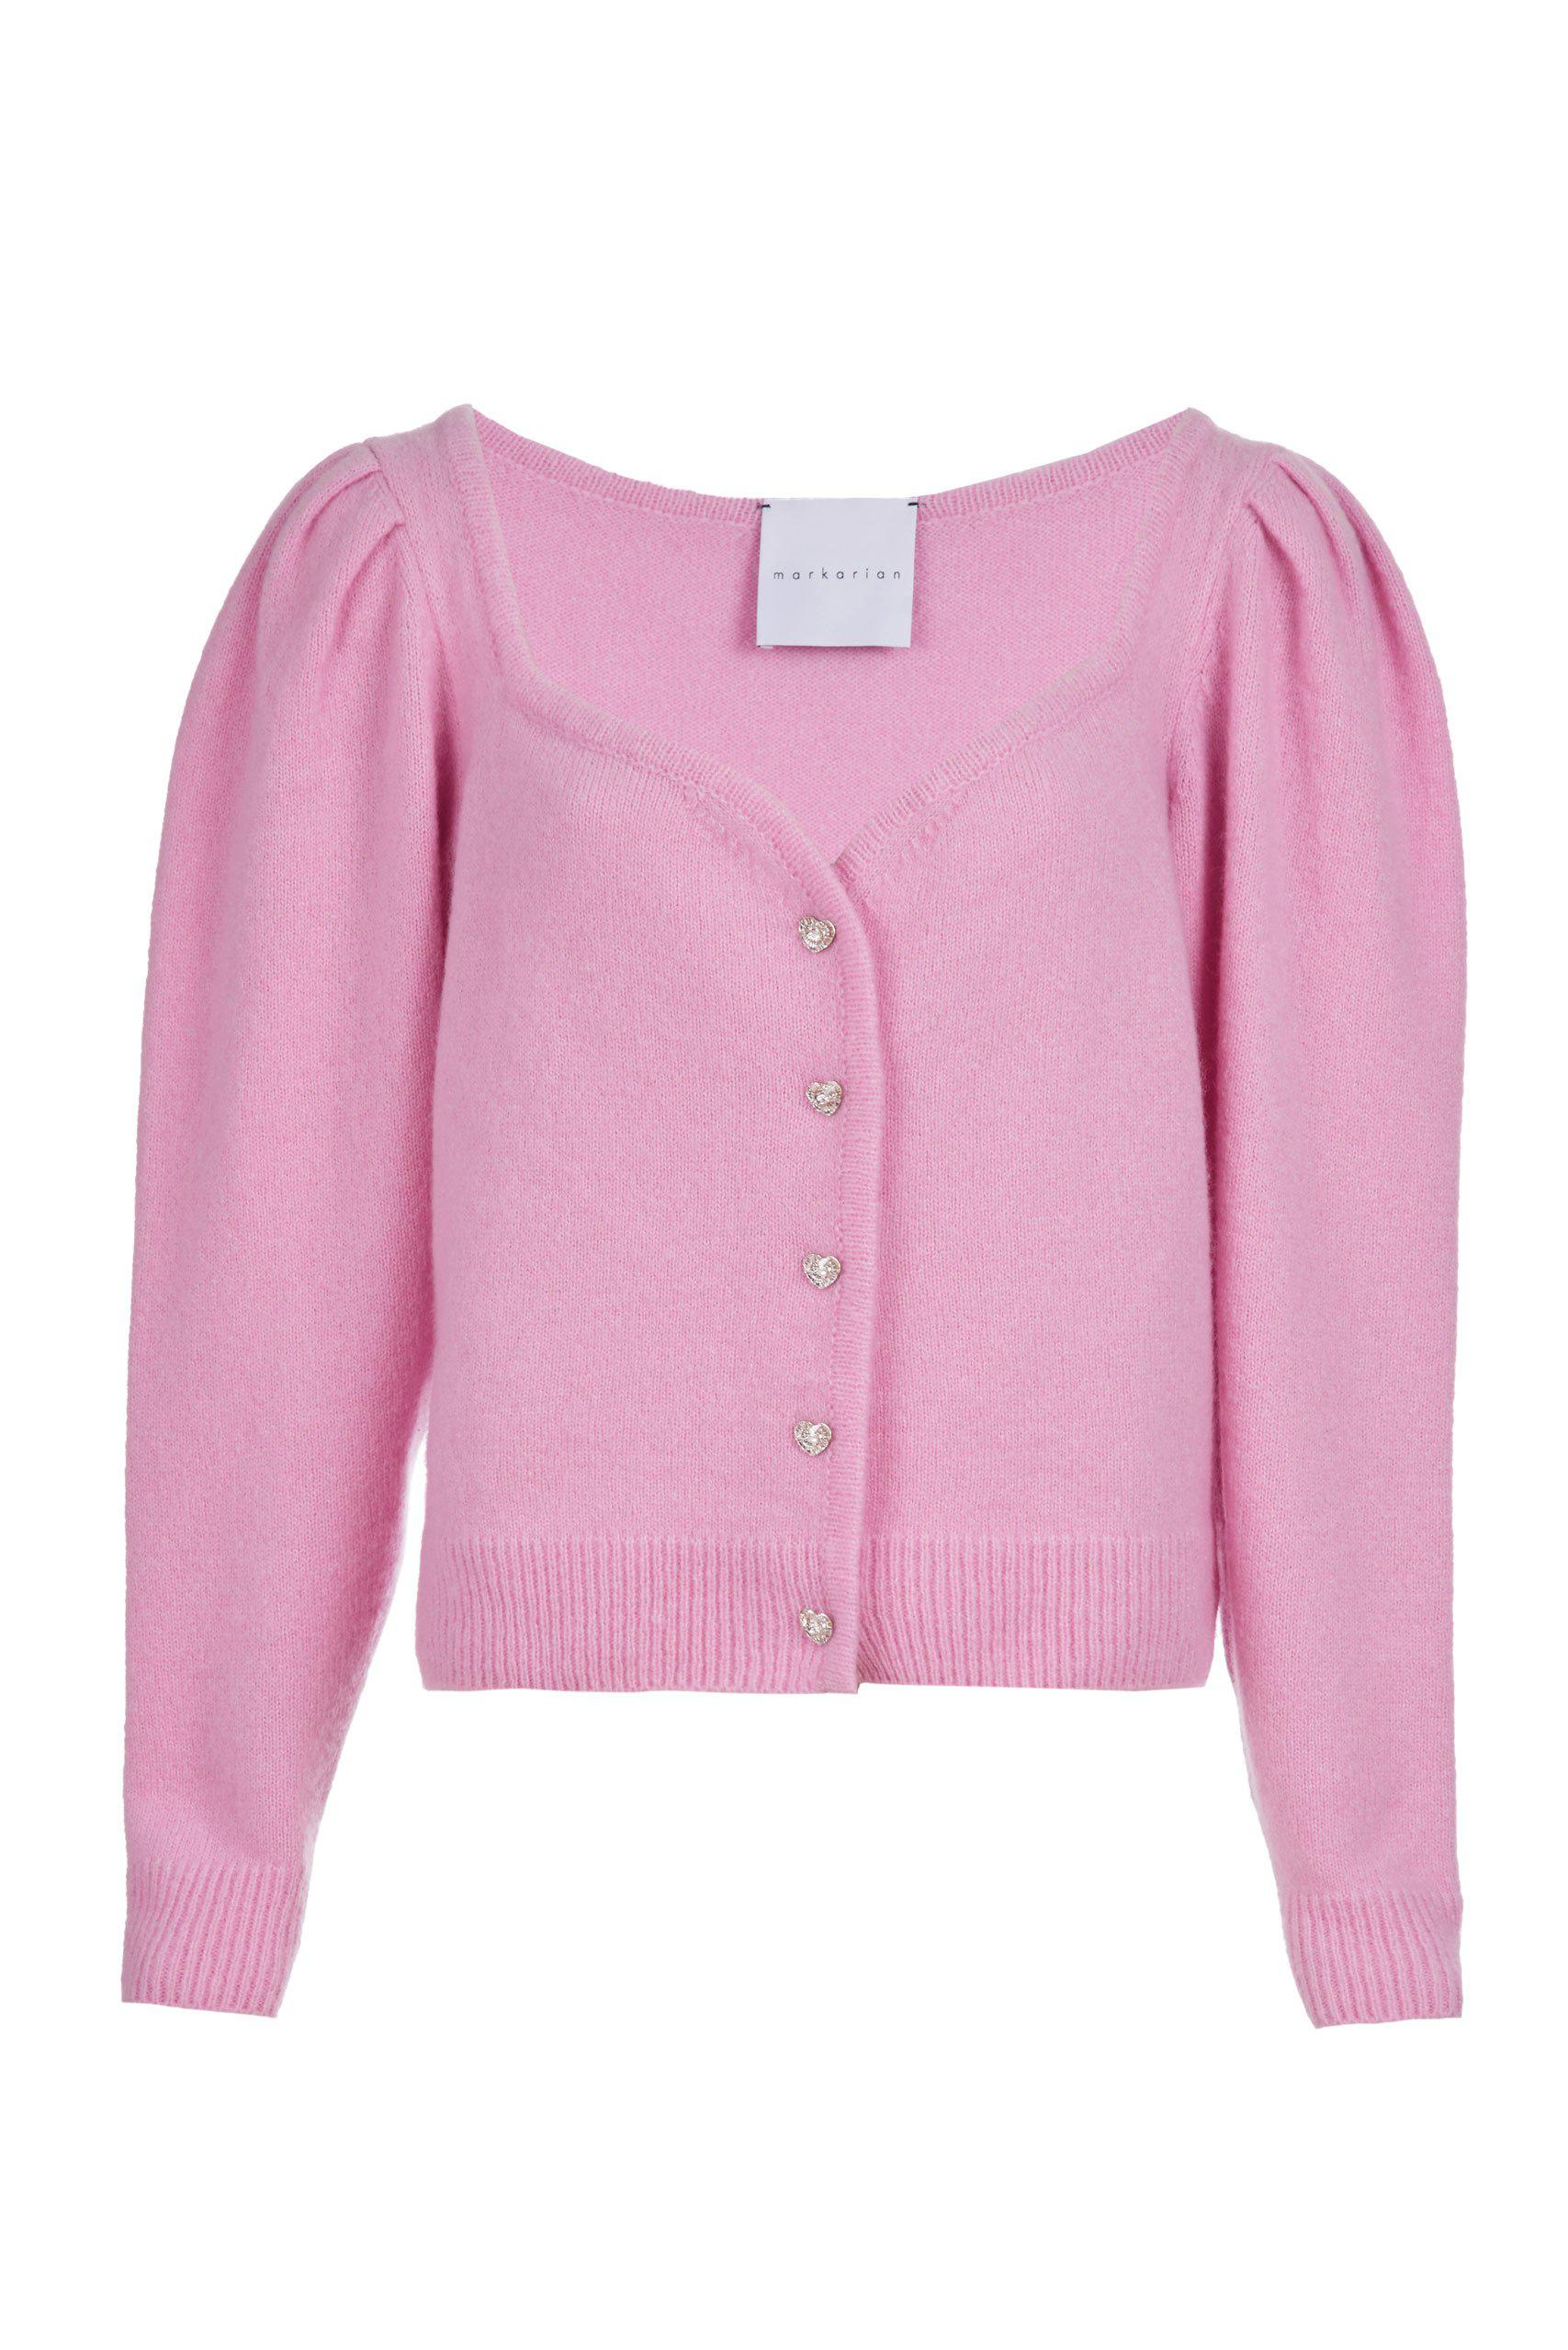 Archive Sale: Sweetheart Neck Pink Cashmere Cardigan with Crystal Heart Buttons 1